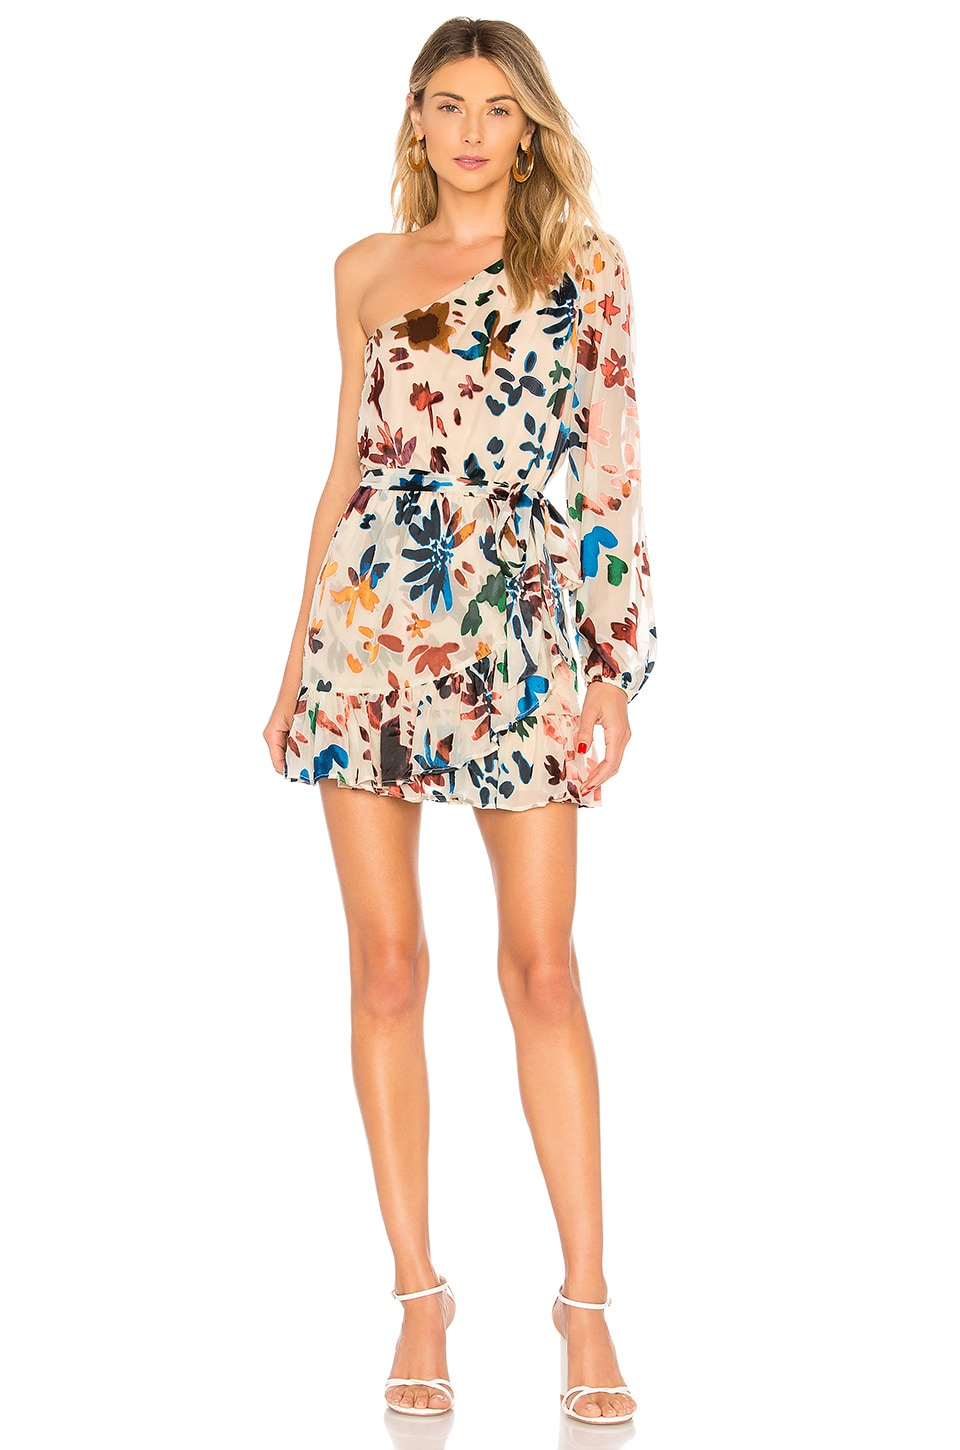 Tularosa Ina Dress in Ombre Floral